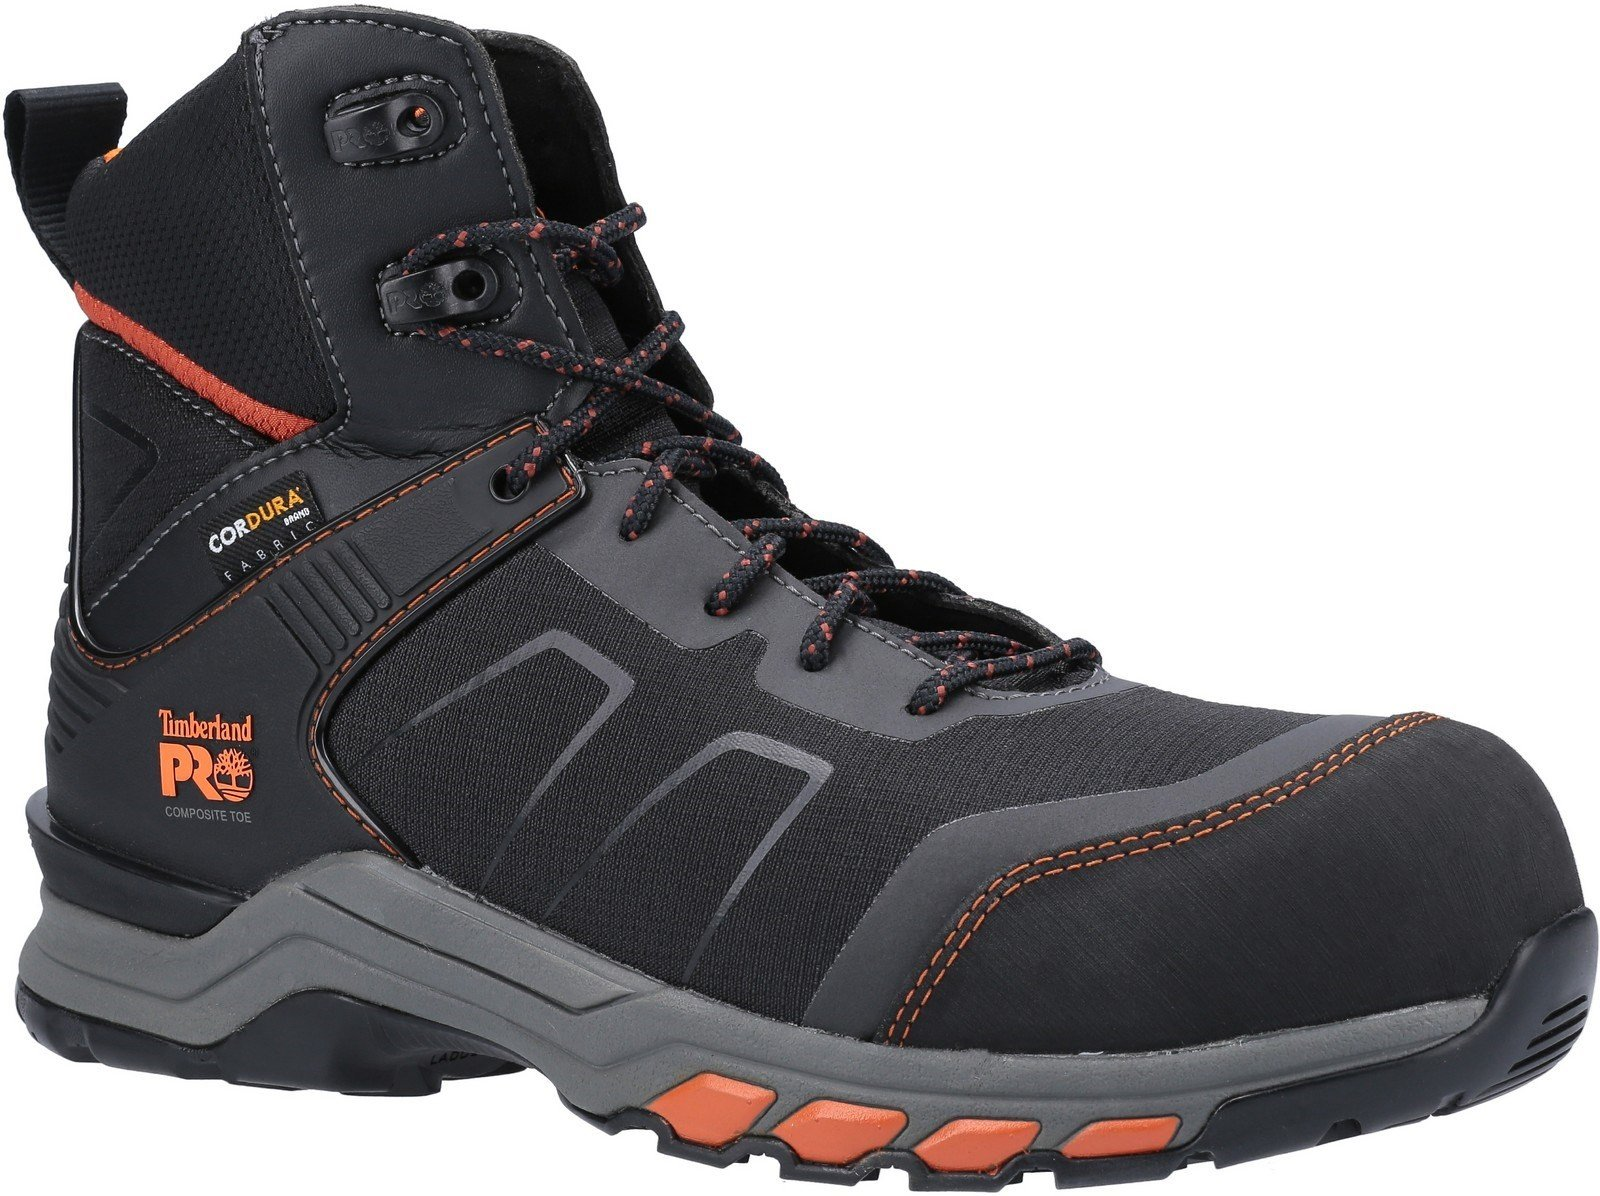 Timberland Pro Men's Hypercharge Safety Work Boot Various Colours 30947 - Black/Orange 6